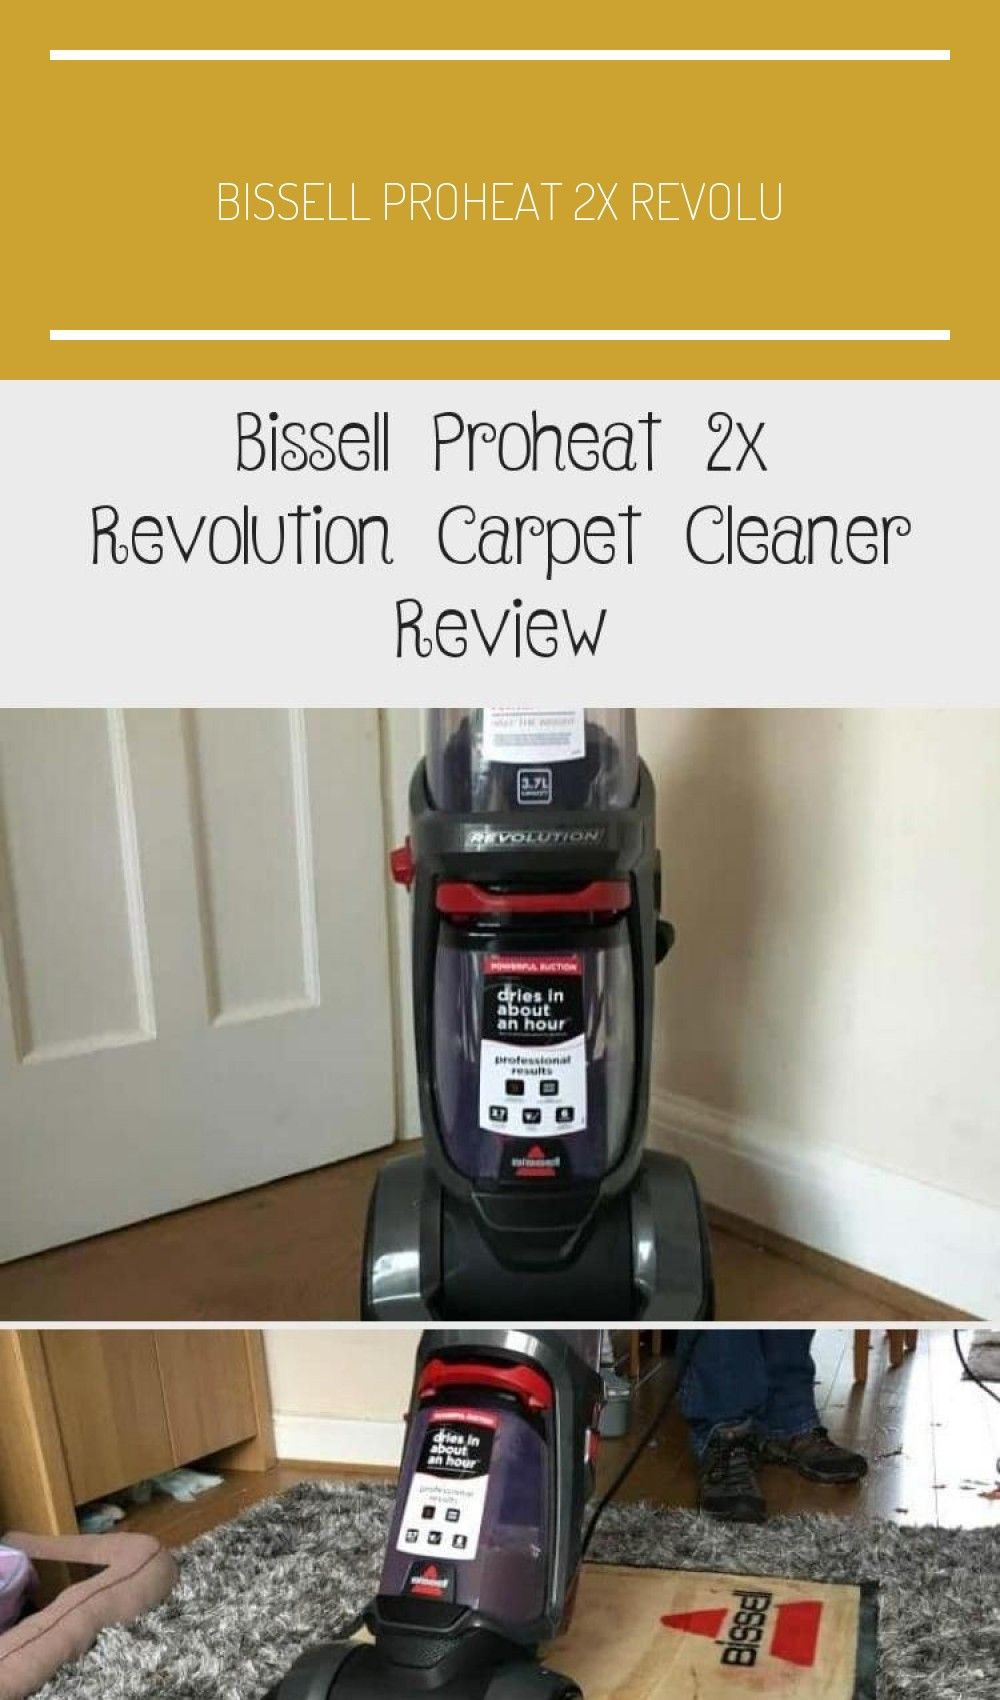 Bissell proheat 2x revolution carpet cleaner review